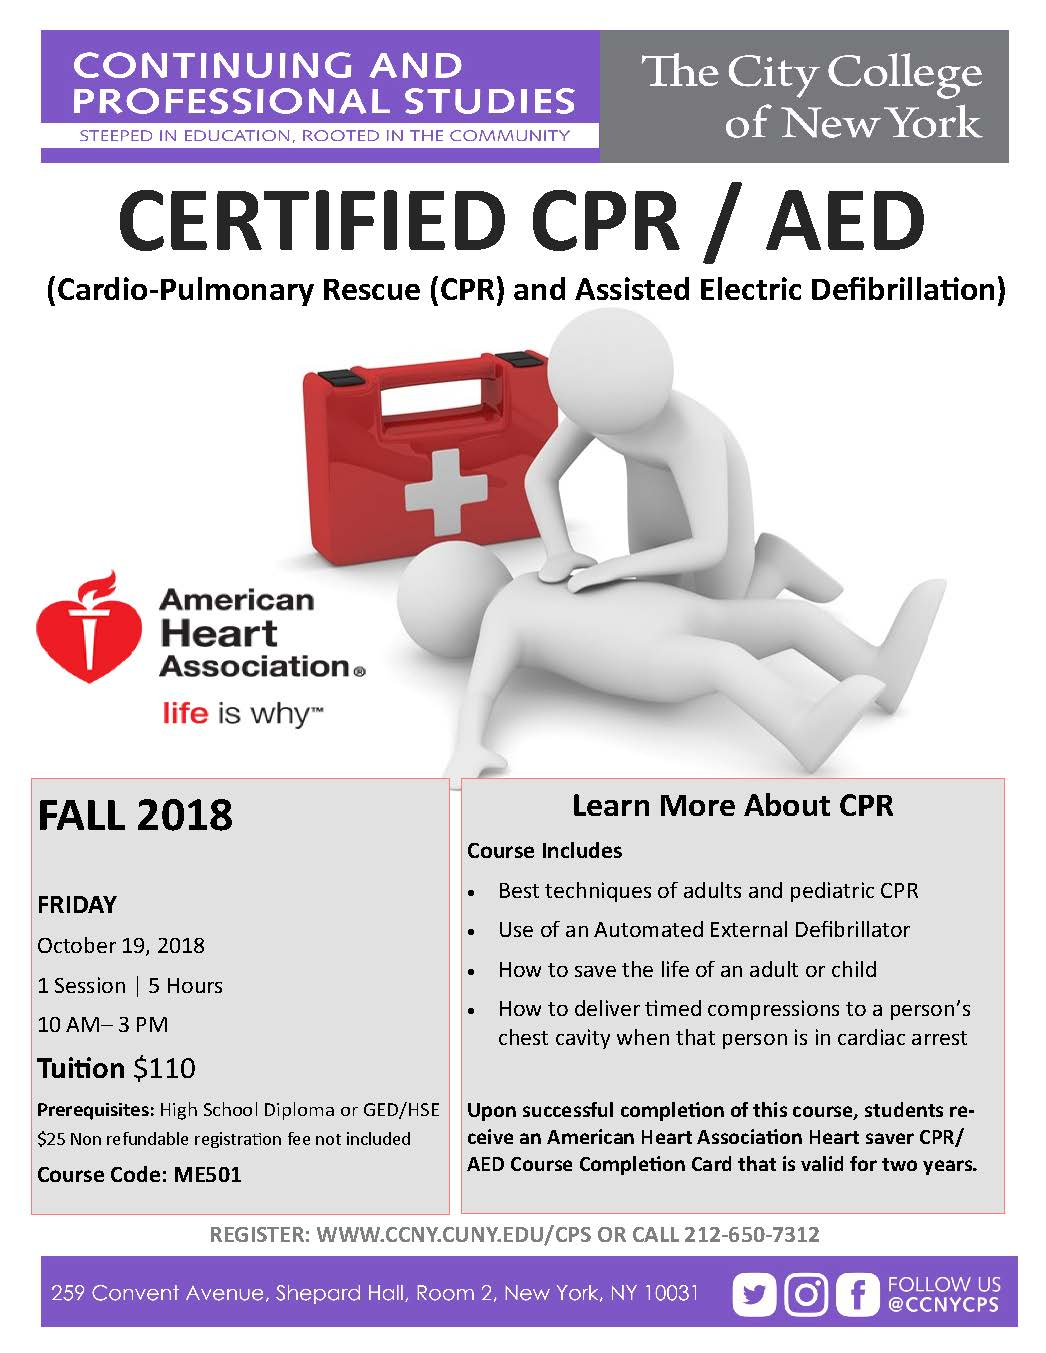 CPR/AED Fall 2018 Course